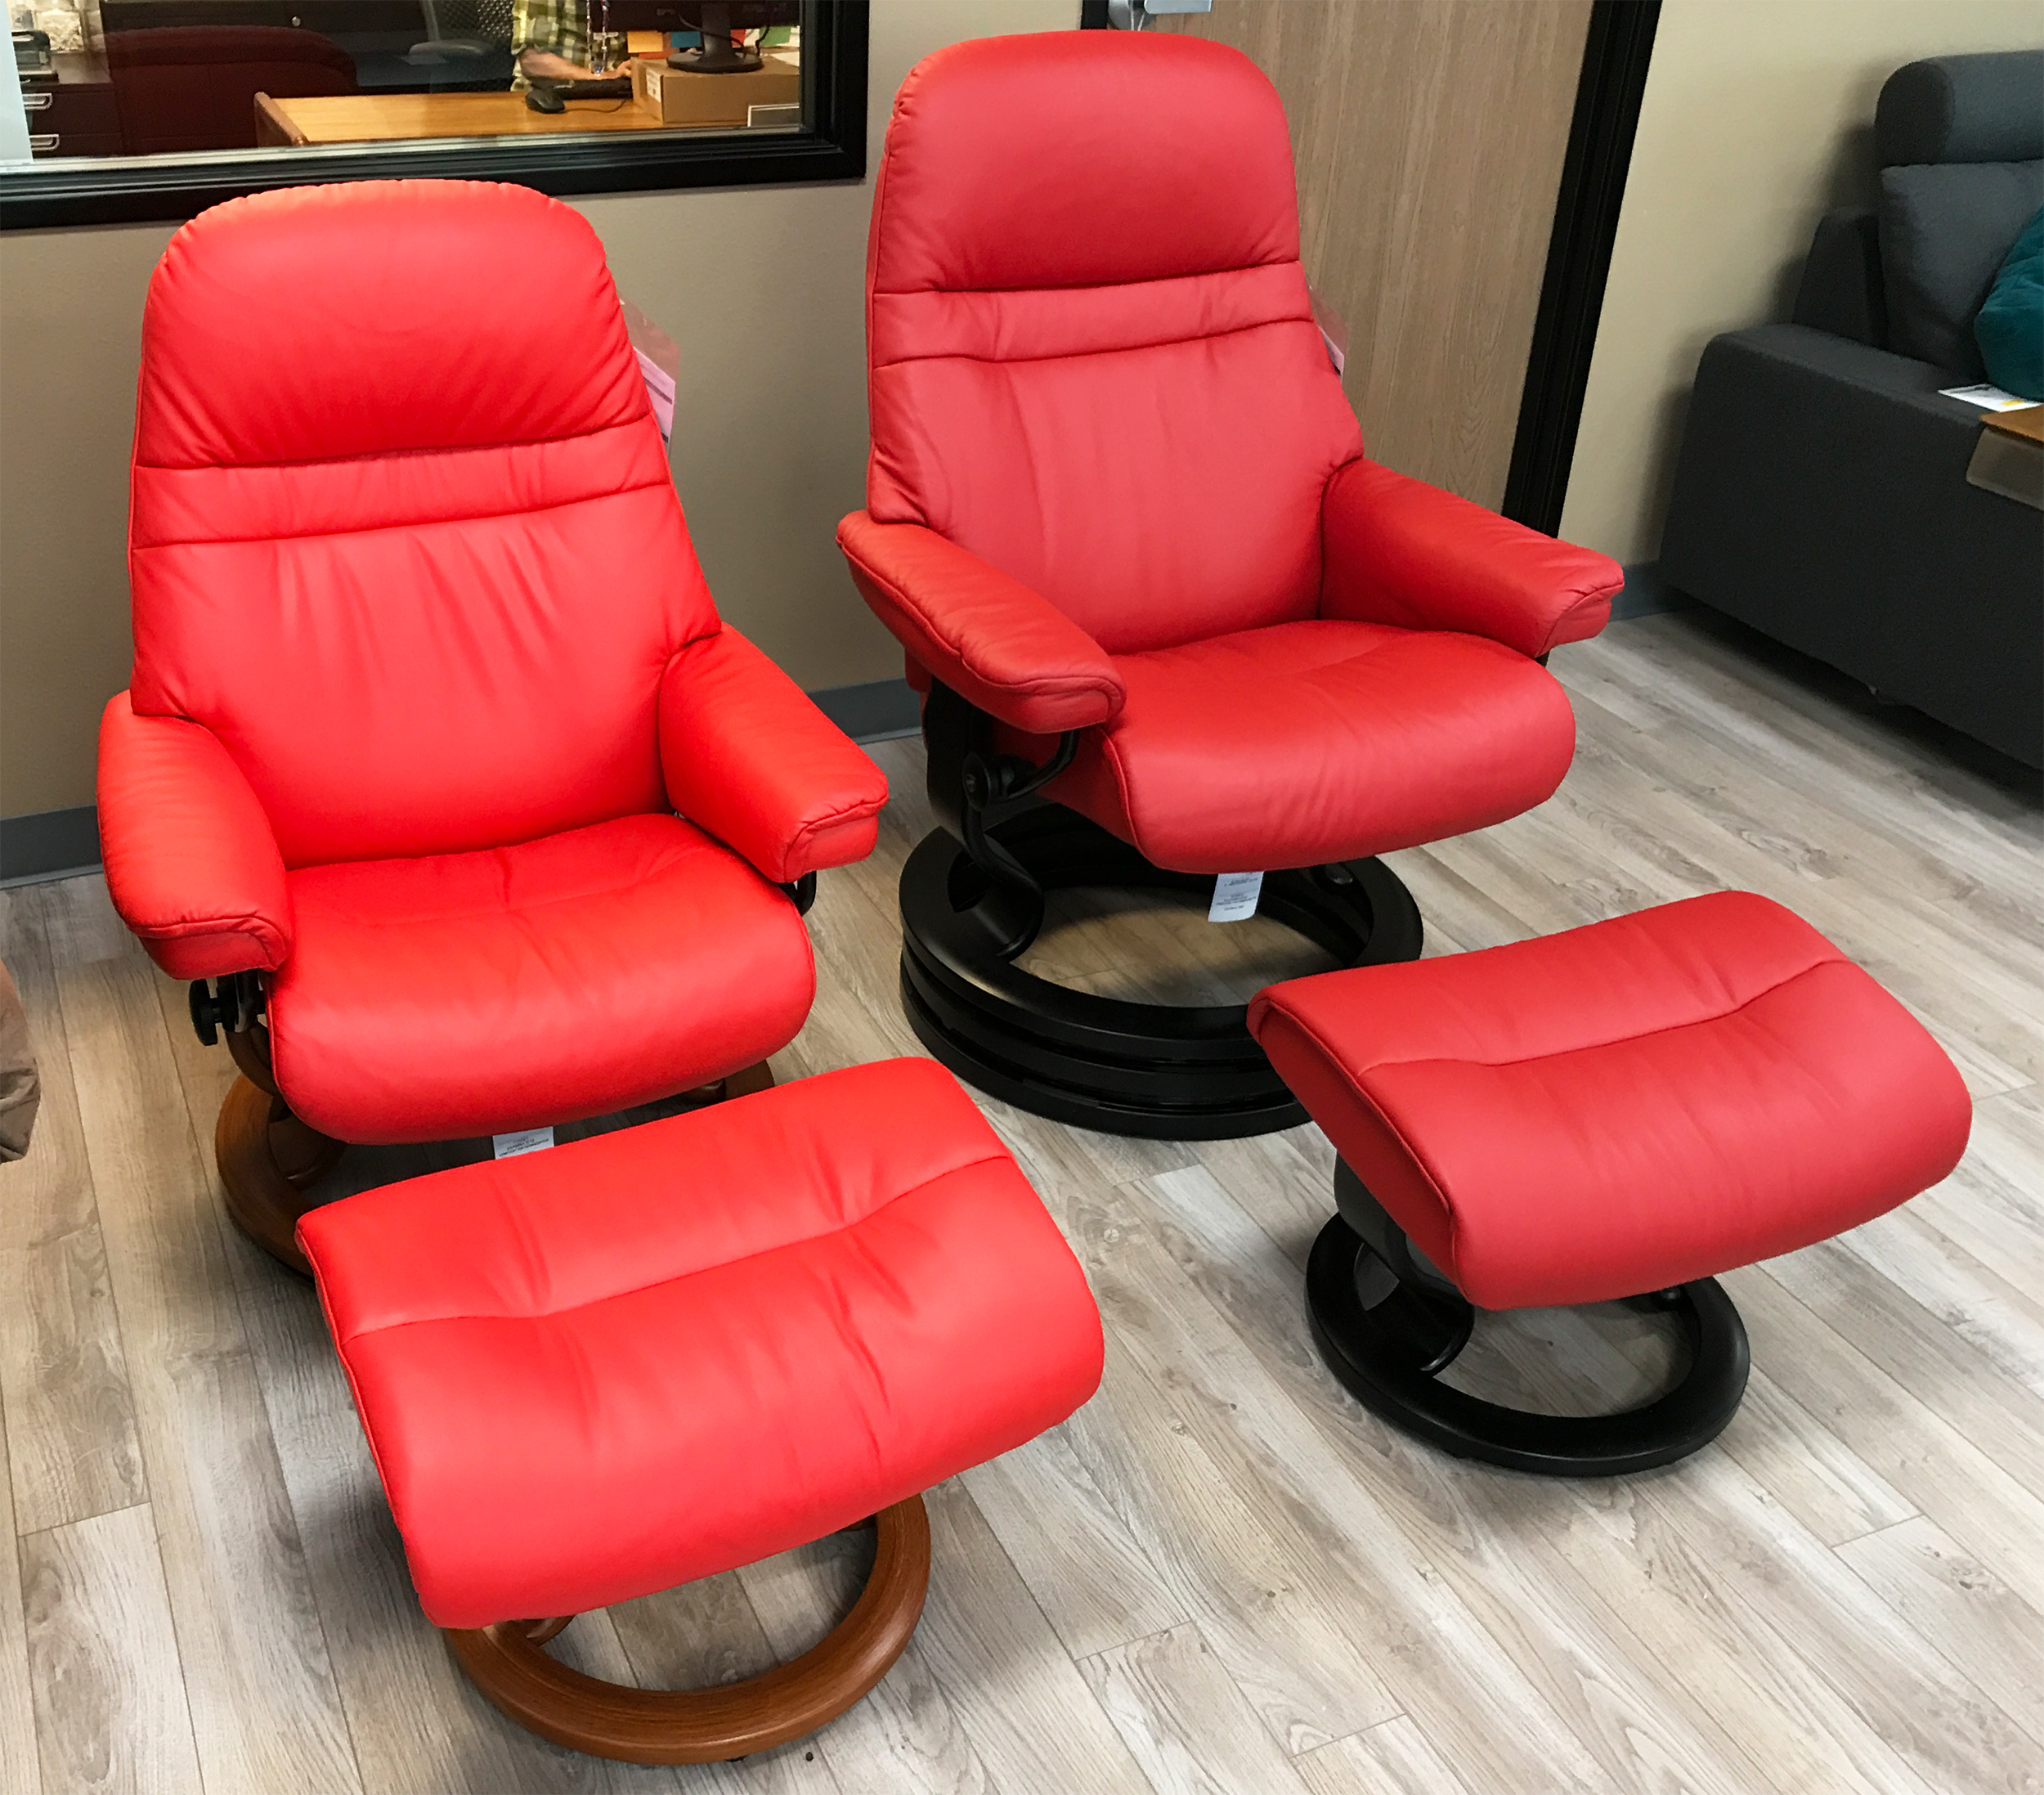 Stressless Sunrise Medium Paloma Tomato And Chilli Red Leather Recliner  Chair And Ottoman